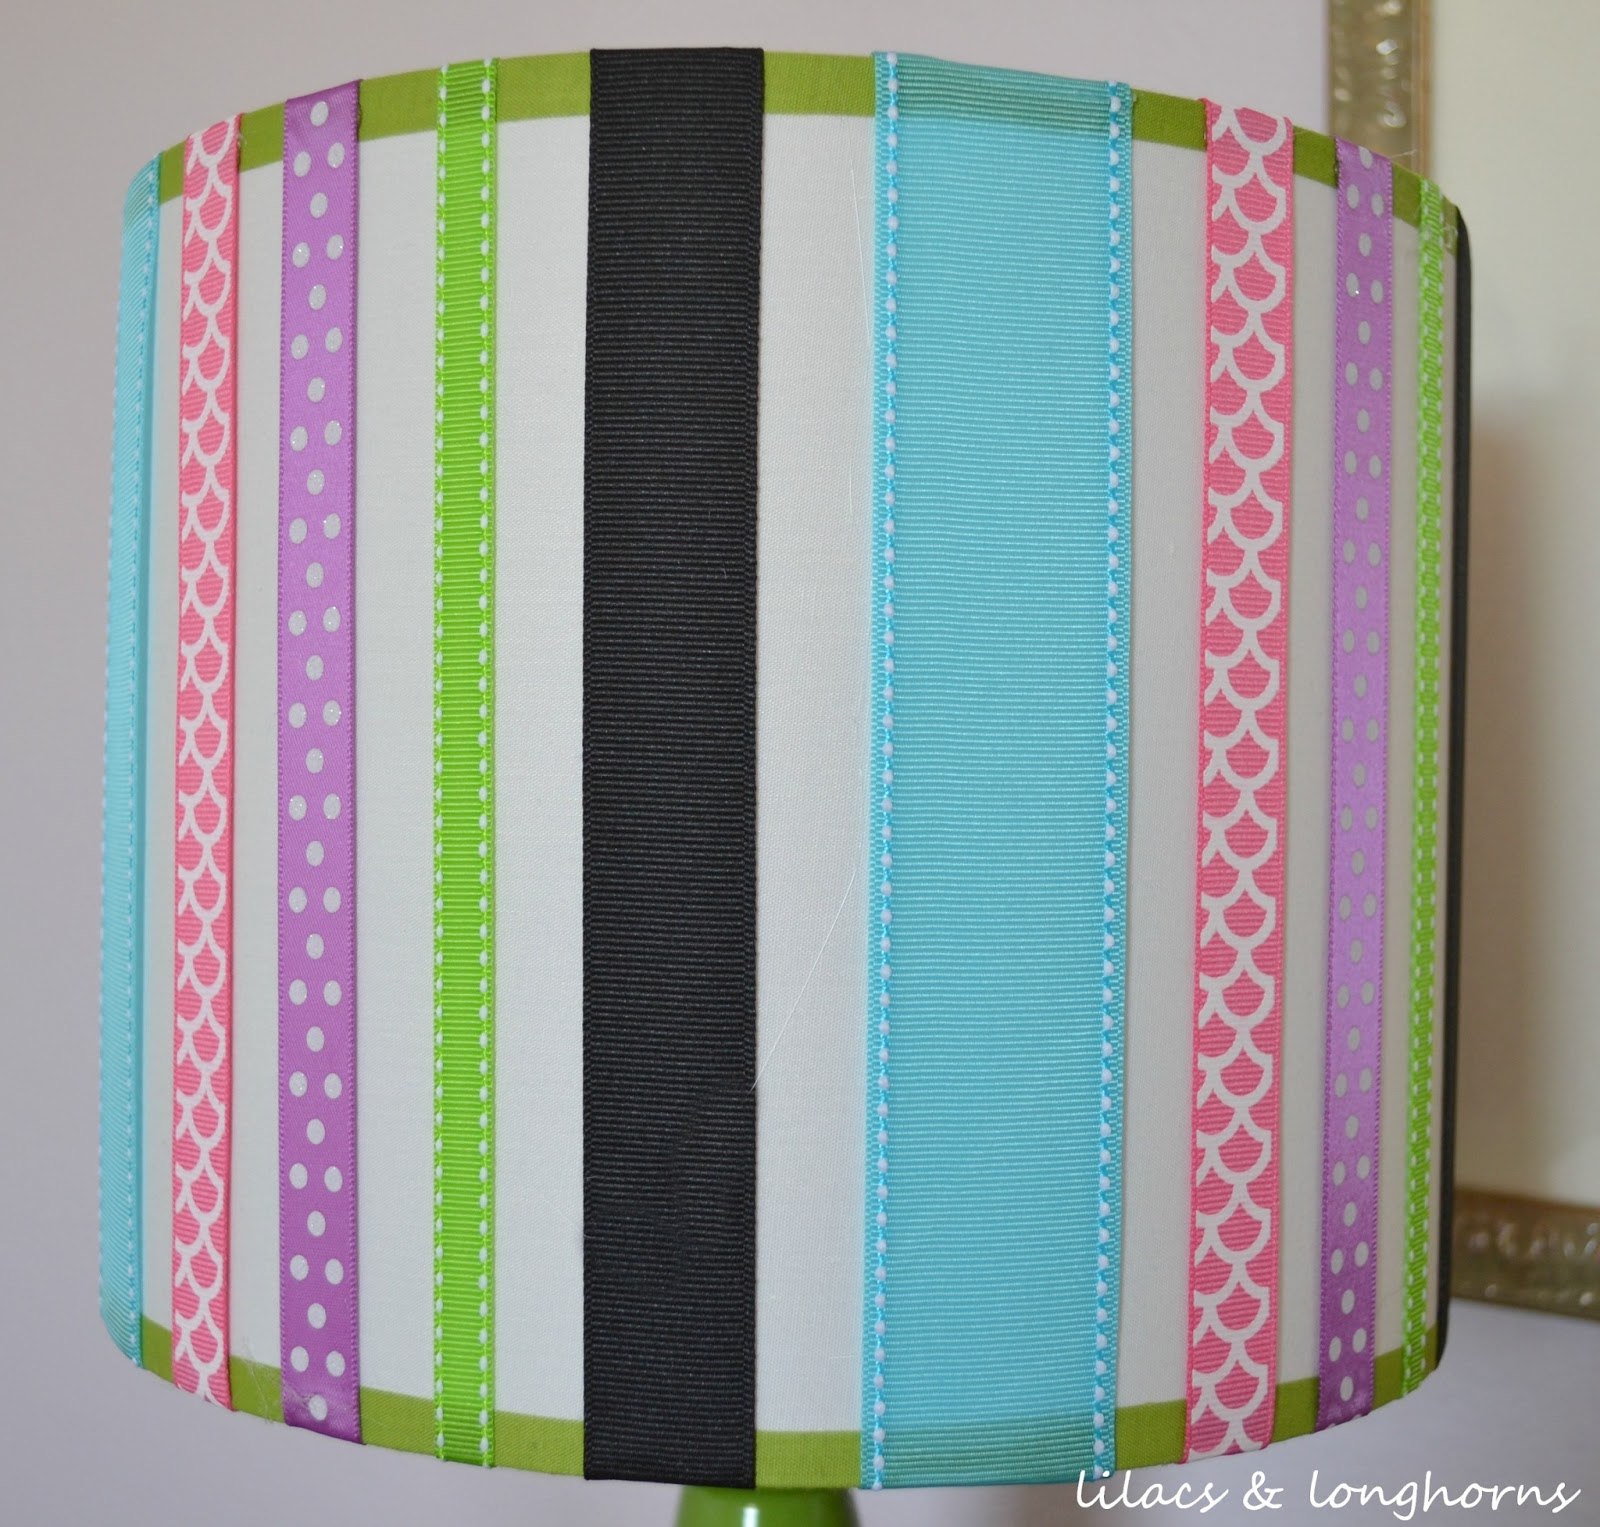 Diy ribbon lamp shade lilacs and longhornslilacs and longhorns aloadofball Choice Image